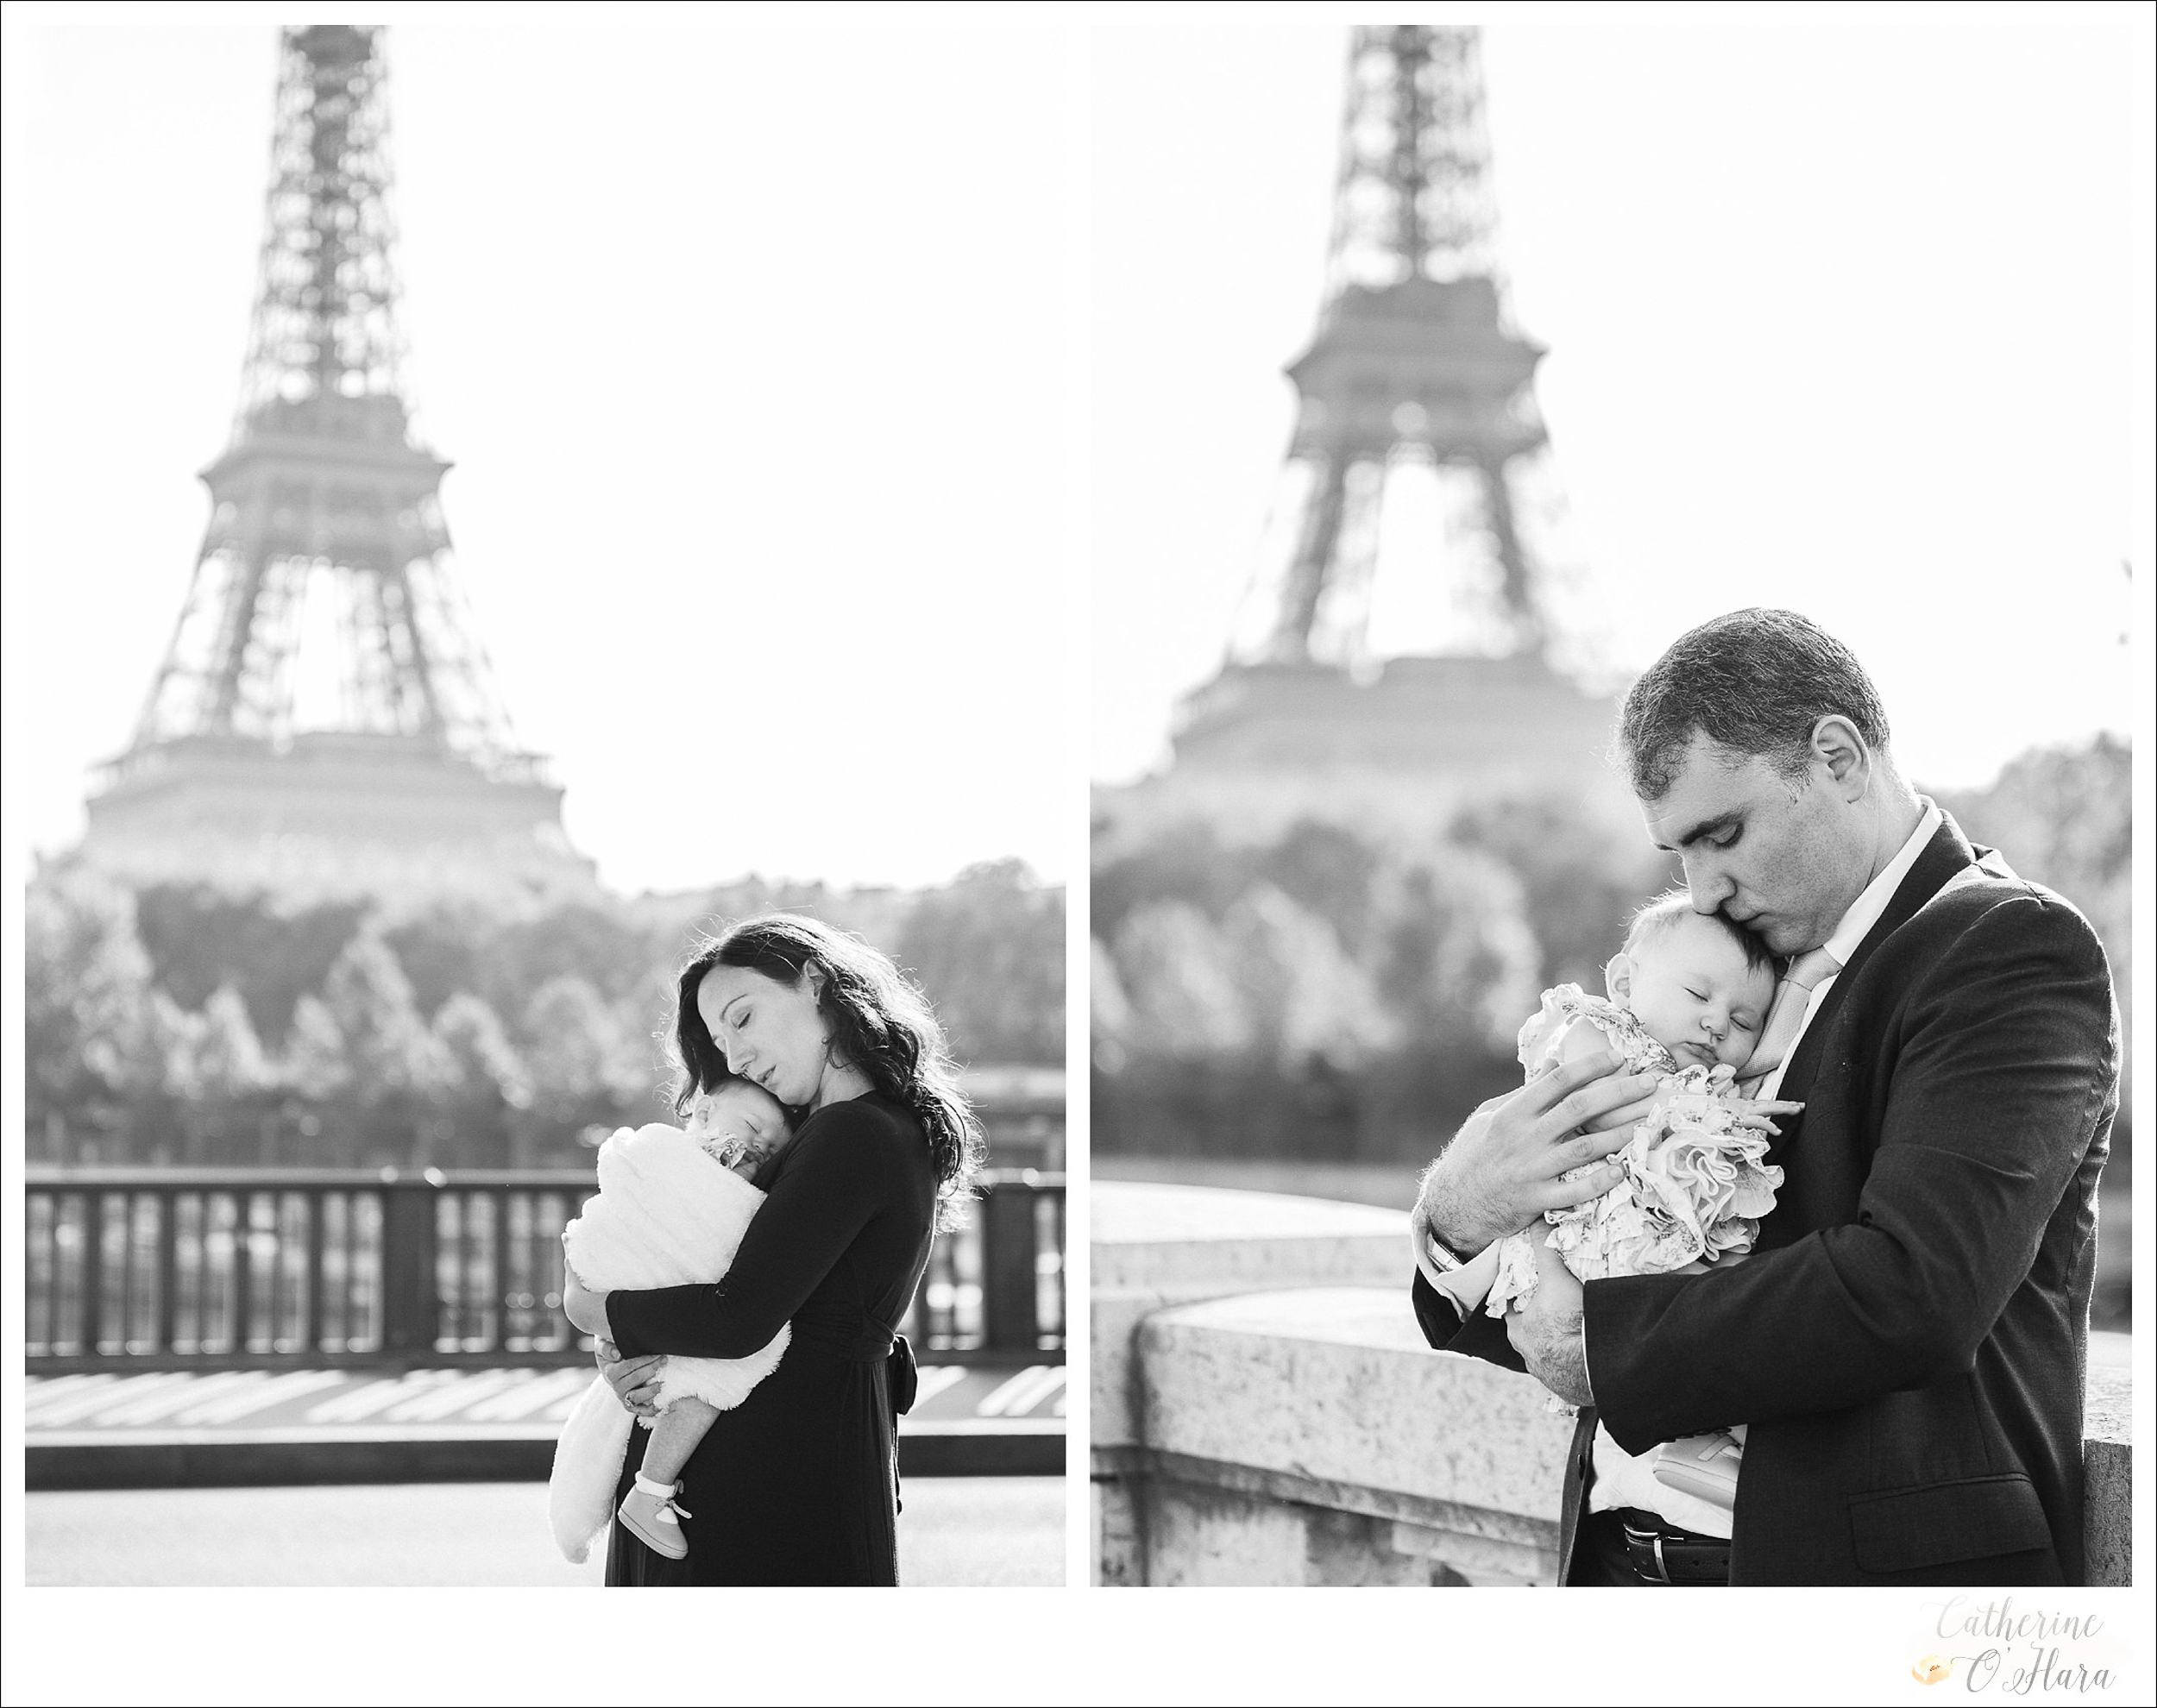 family-photographer-paris-02.jpg